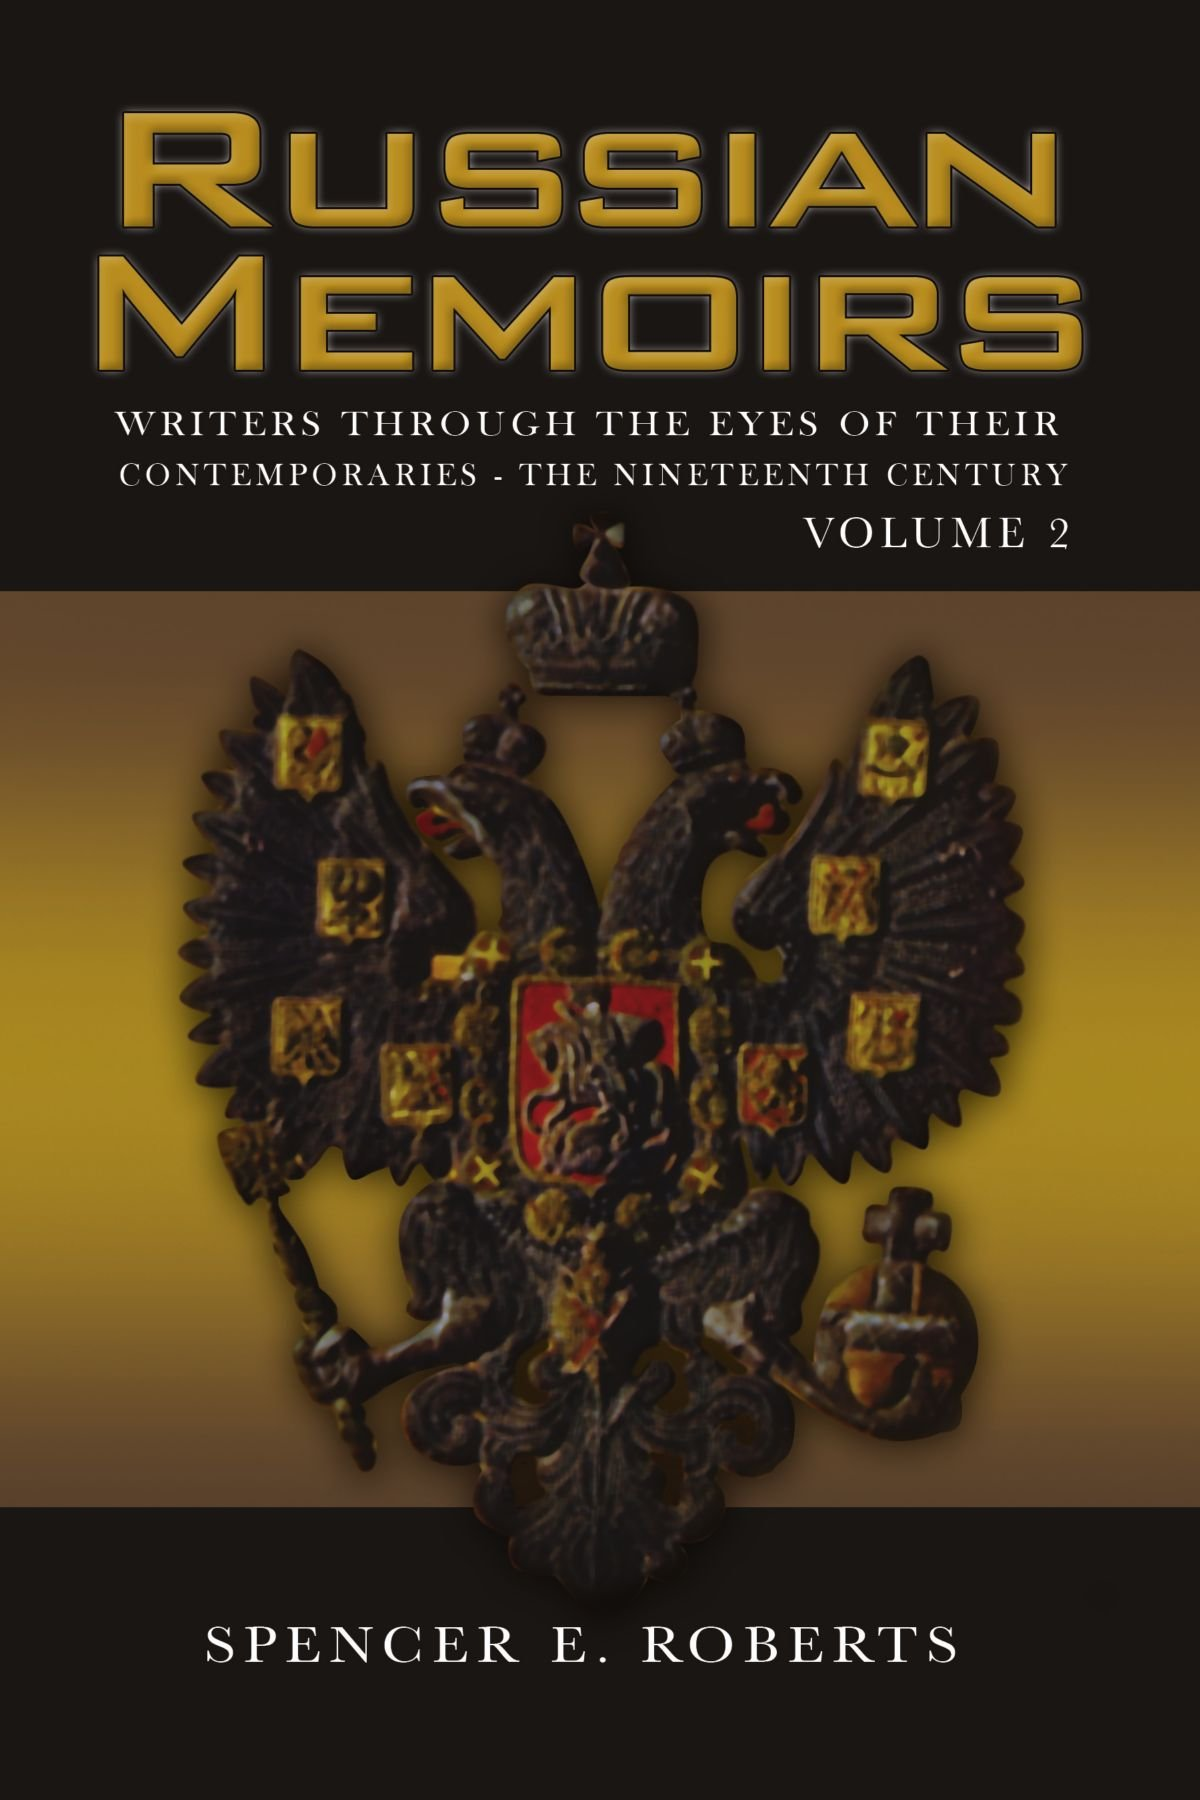 Russian Memoirs Volume 2: Writers Through the Eyes of Their Contemporaries - The Nineteenth Century Volume 2 PDF